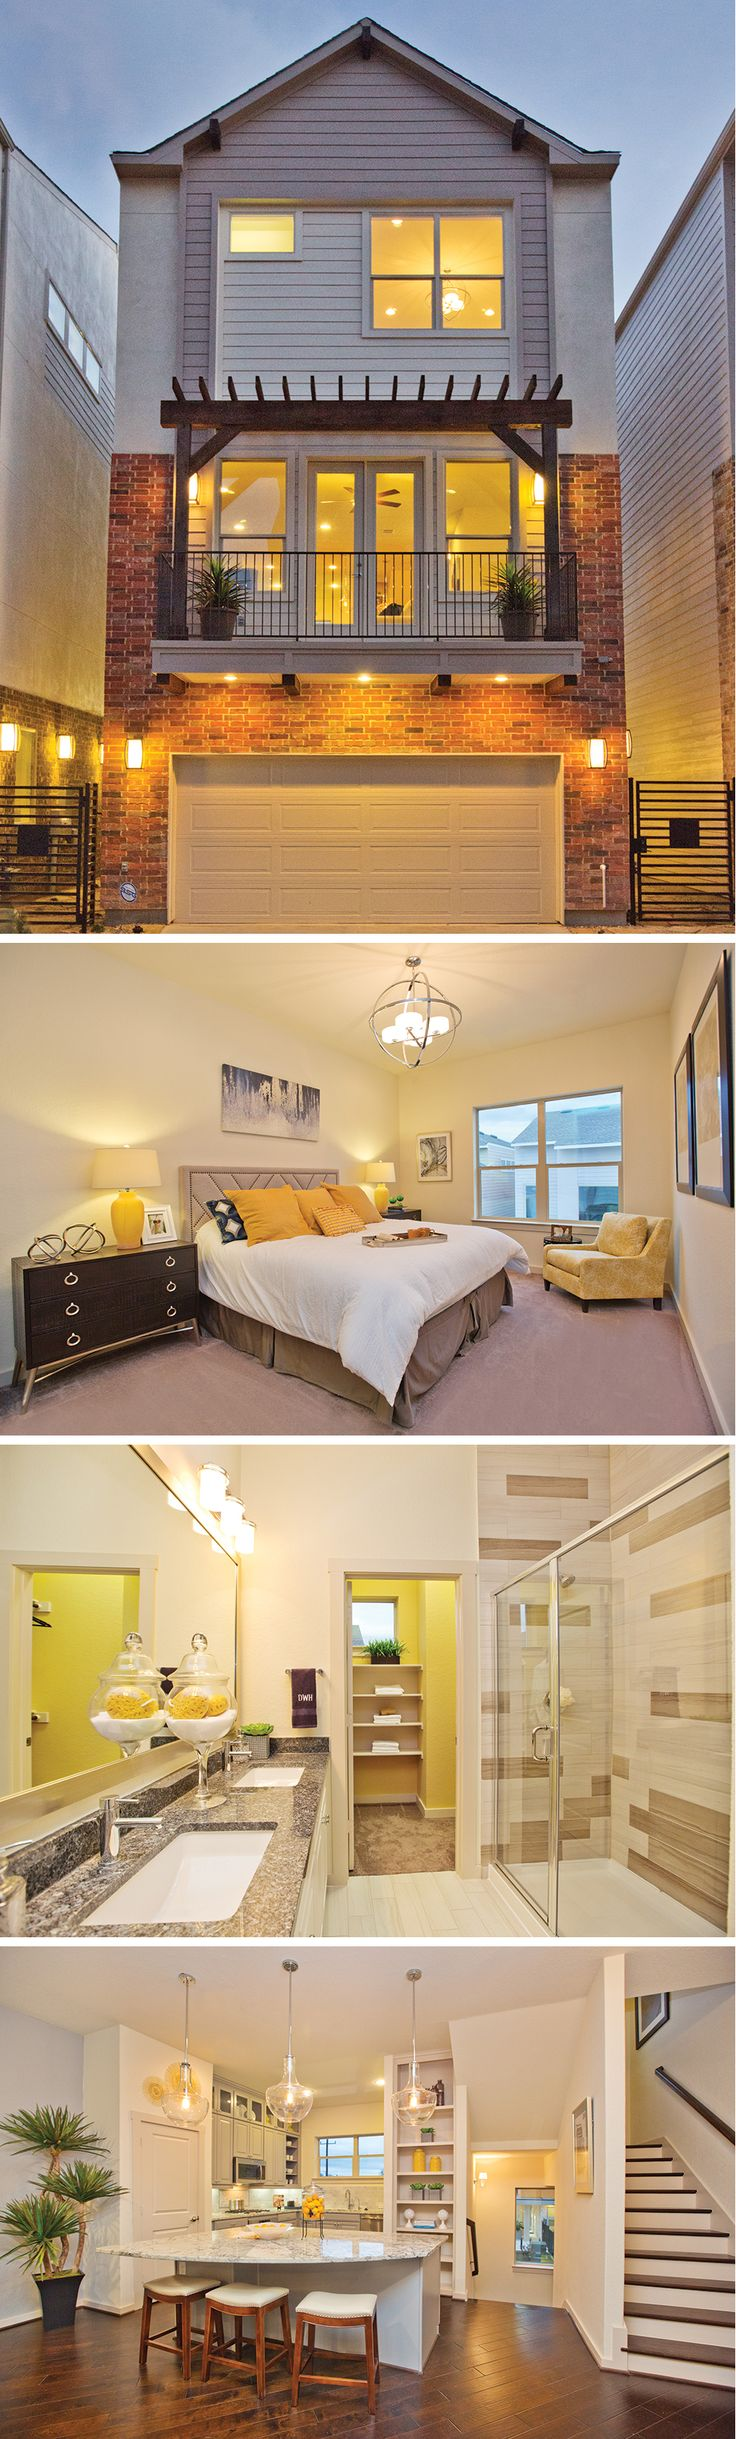 The Aransas by David Weekley Homes in The Gardens at Urban Crest is a 3 bedroom, 3 bath floorplan that features an open kitchen and living room layout, a large owners retreat and a 2 car garage.